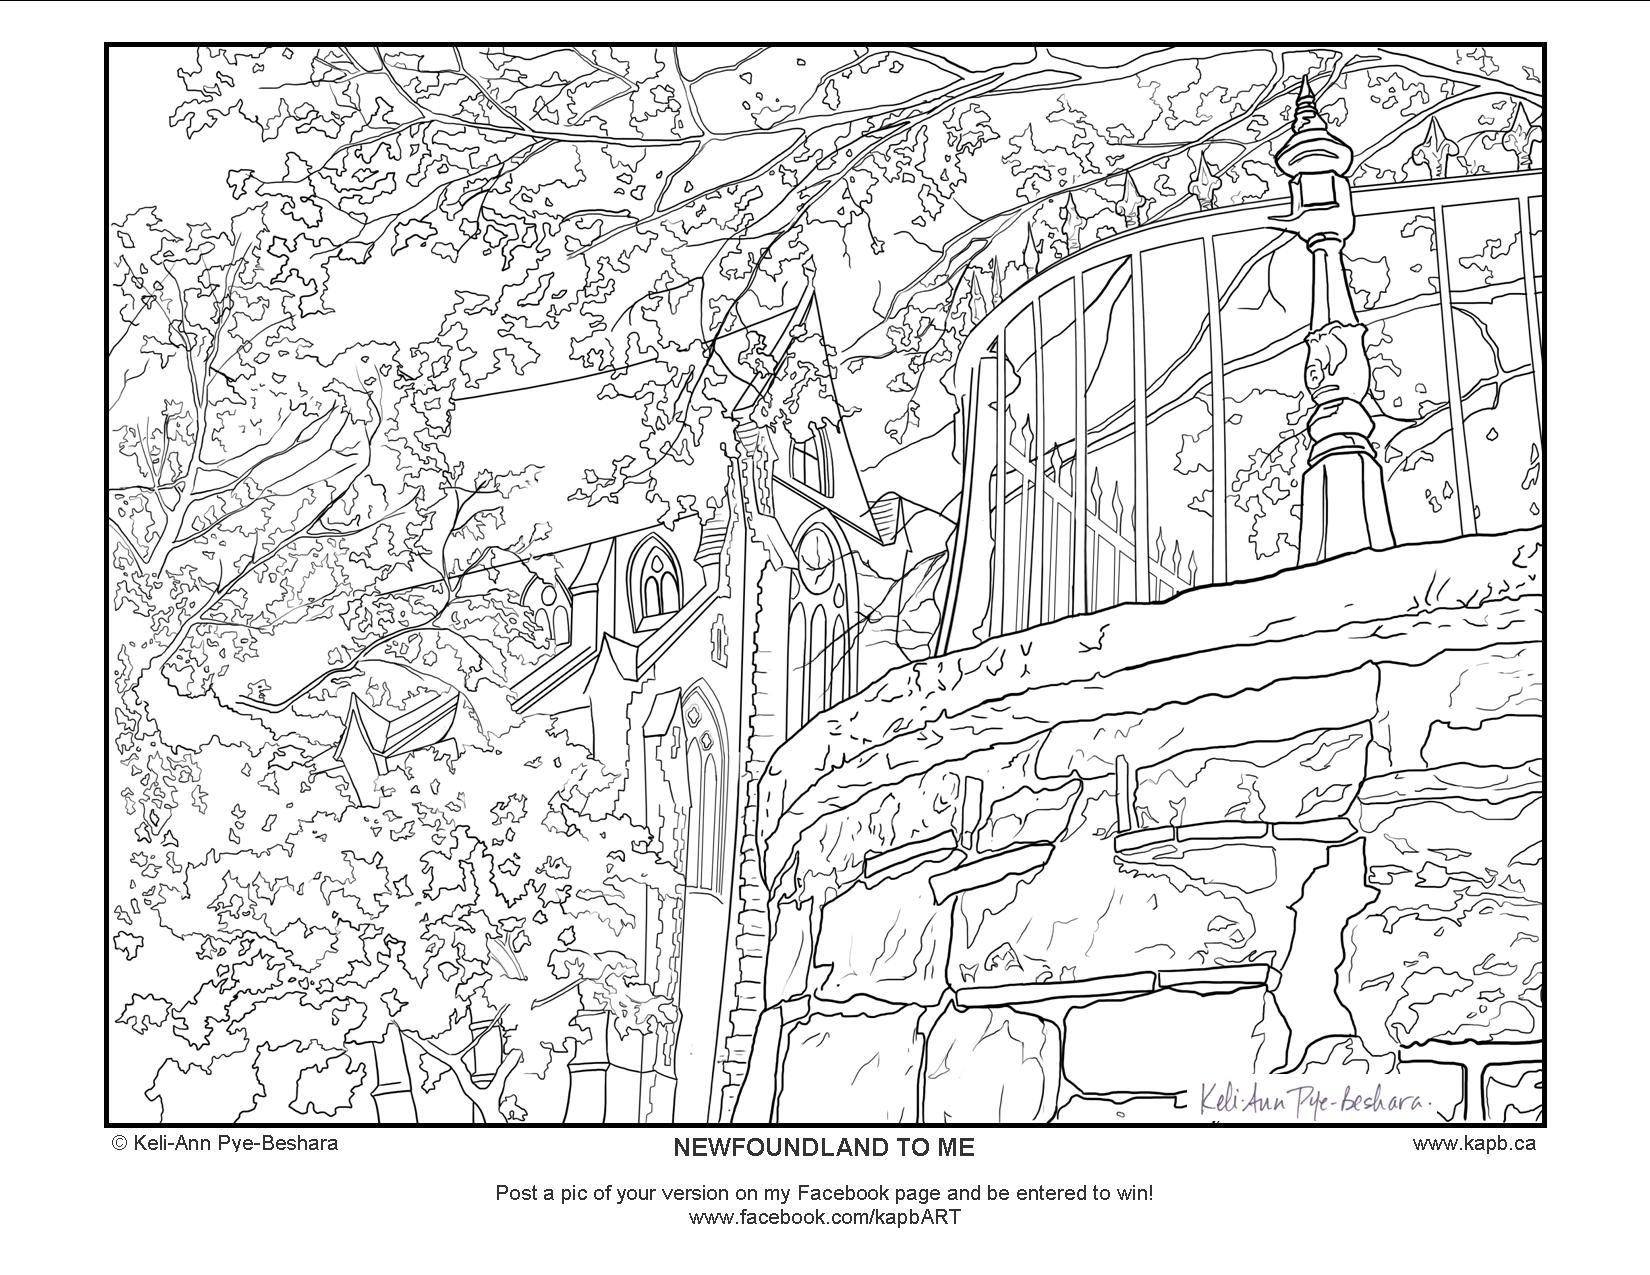 newfoundland flag coloring page download newfoundland coloring for free designlooter coloring newfoundland flag page